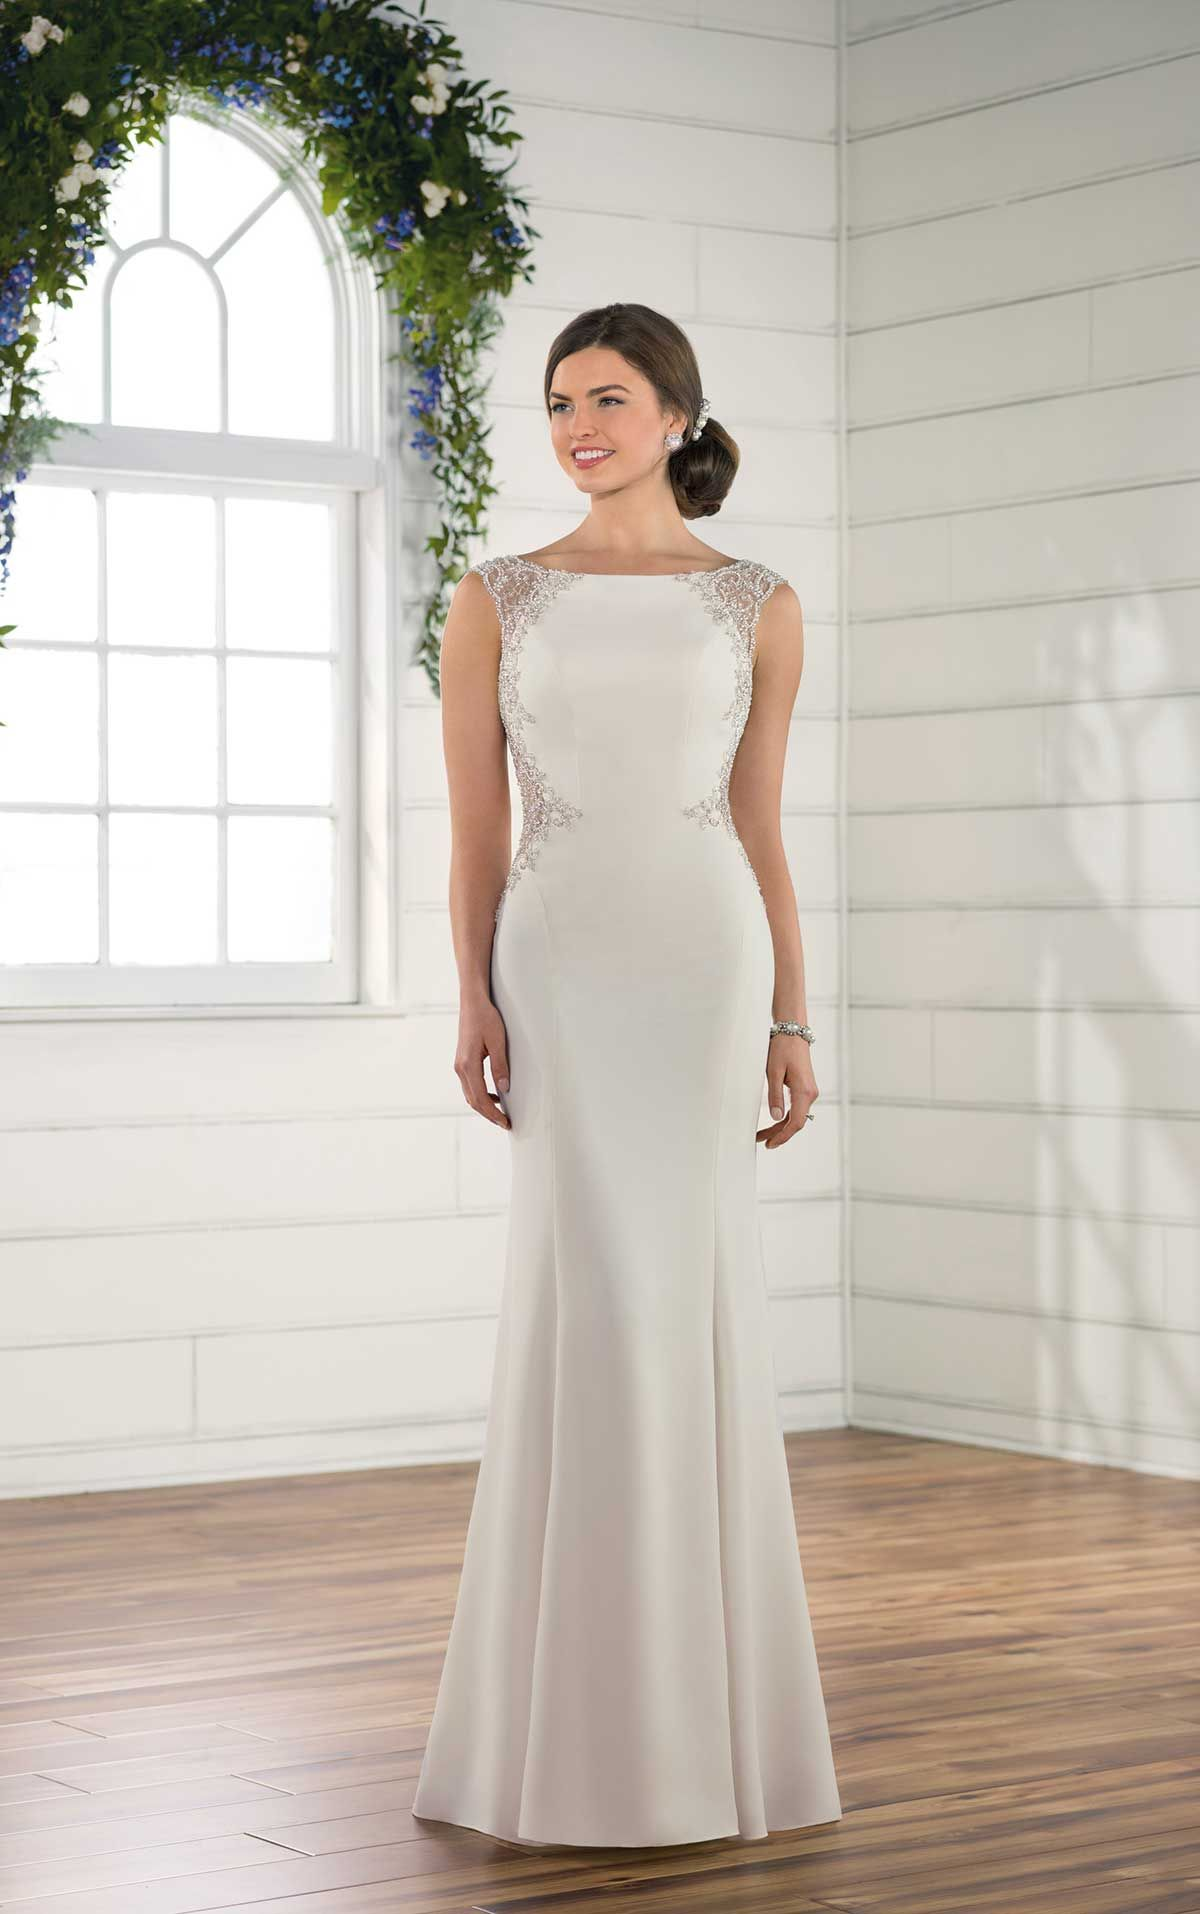 Vintage Glamour Done Right This Sheath Gown Brings Glam To Any Wedding A High Neckline Creates An Elegant Style And Is Accented By Beaded Straps: Vintage Glam Wedding Dresses At Reisefeber.org